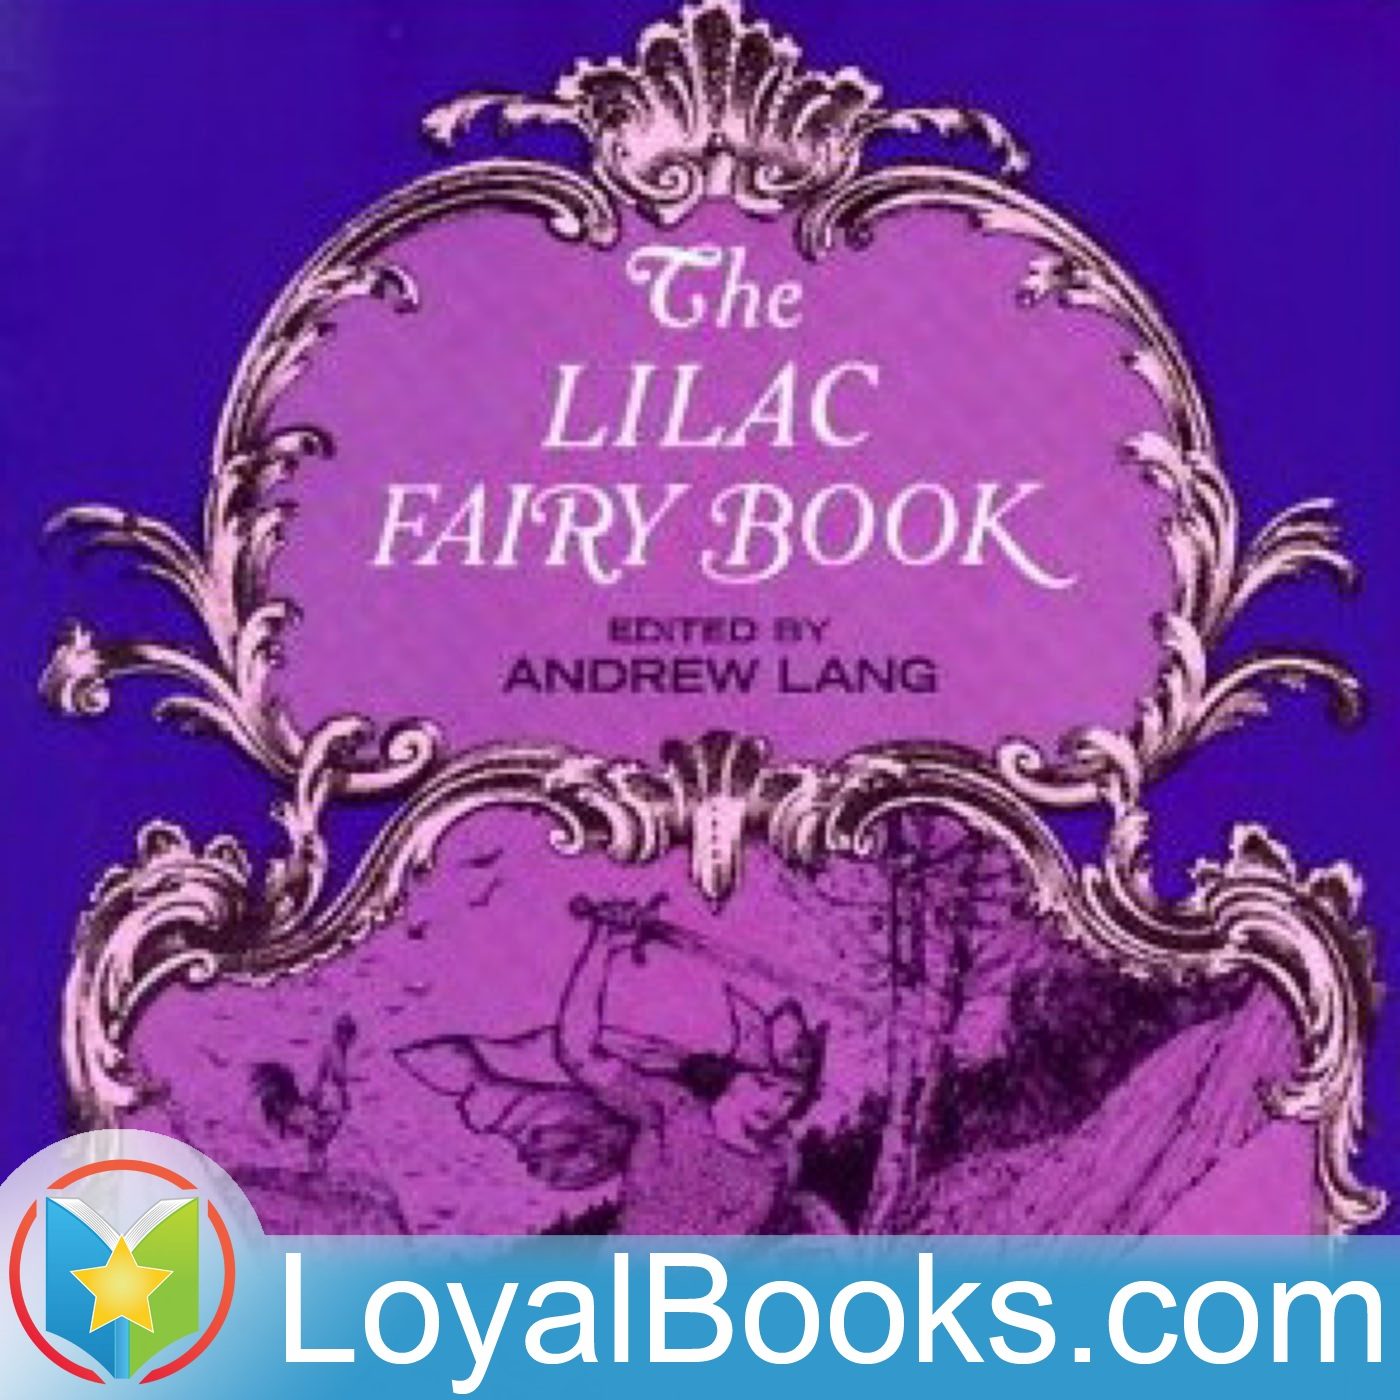 <![CDATA[The Lilac Fairy Book by Unknown]]>